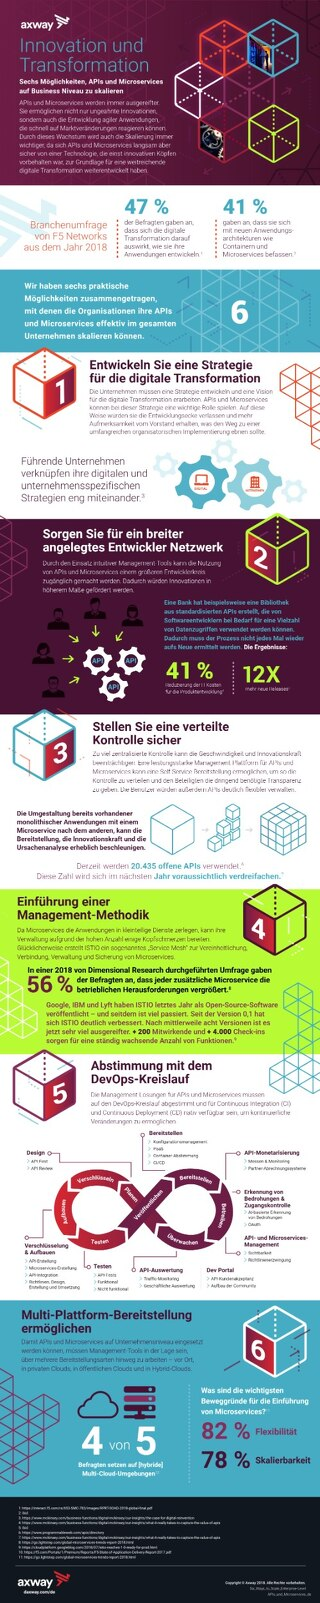 Innovation und Transformation